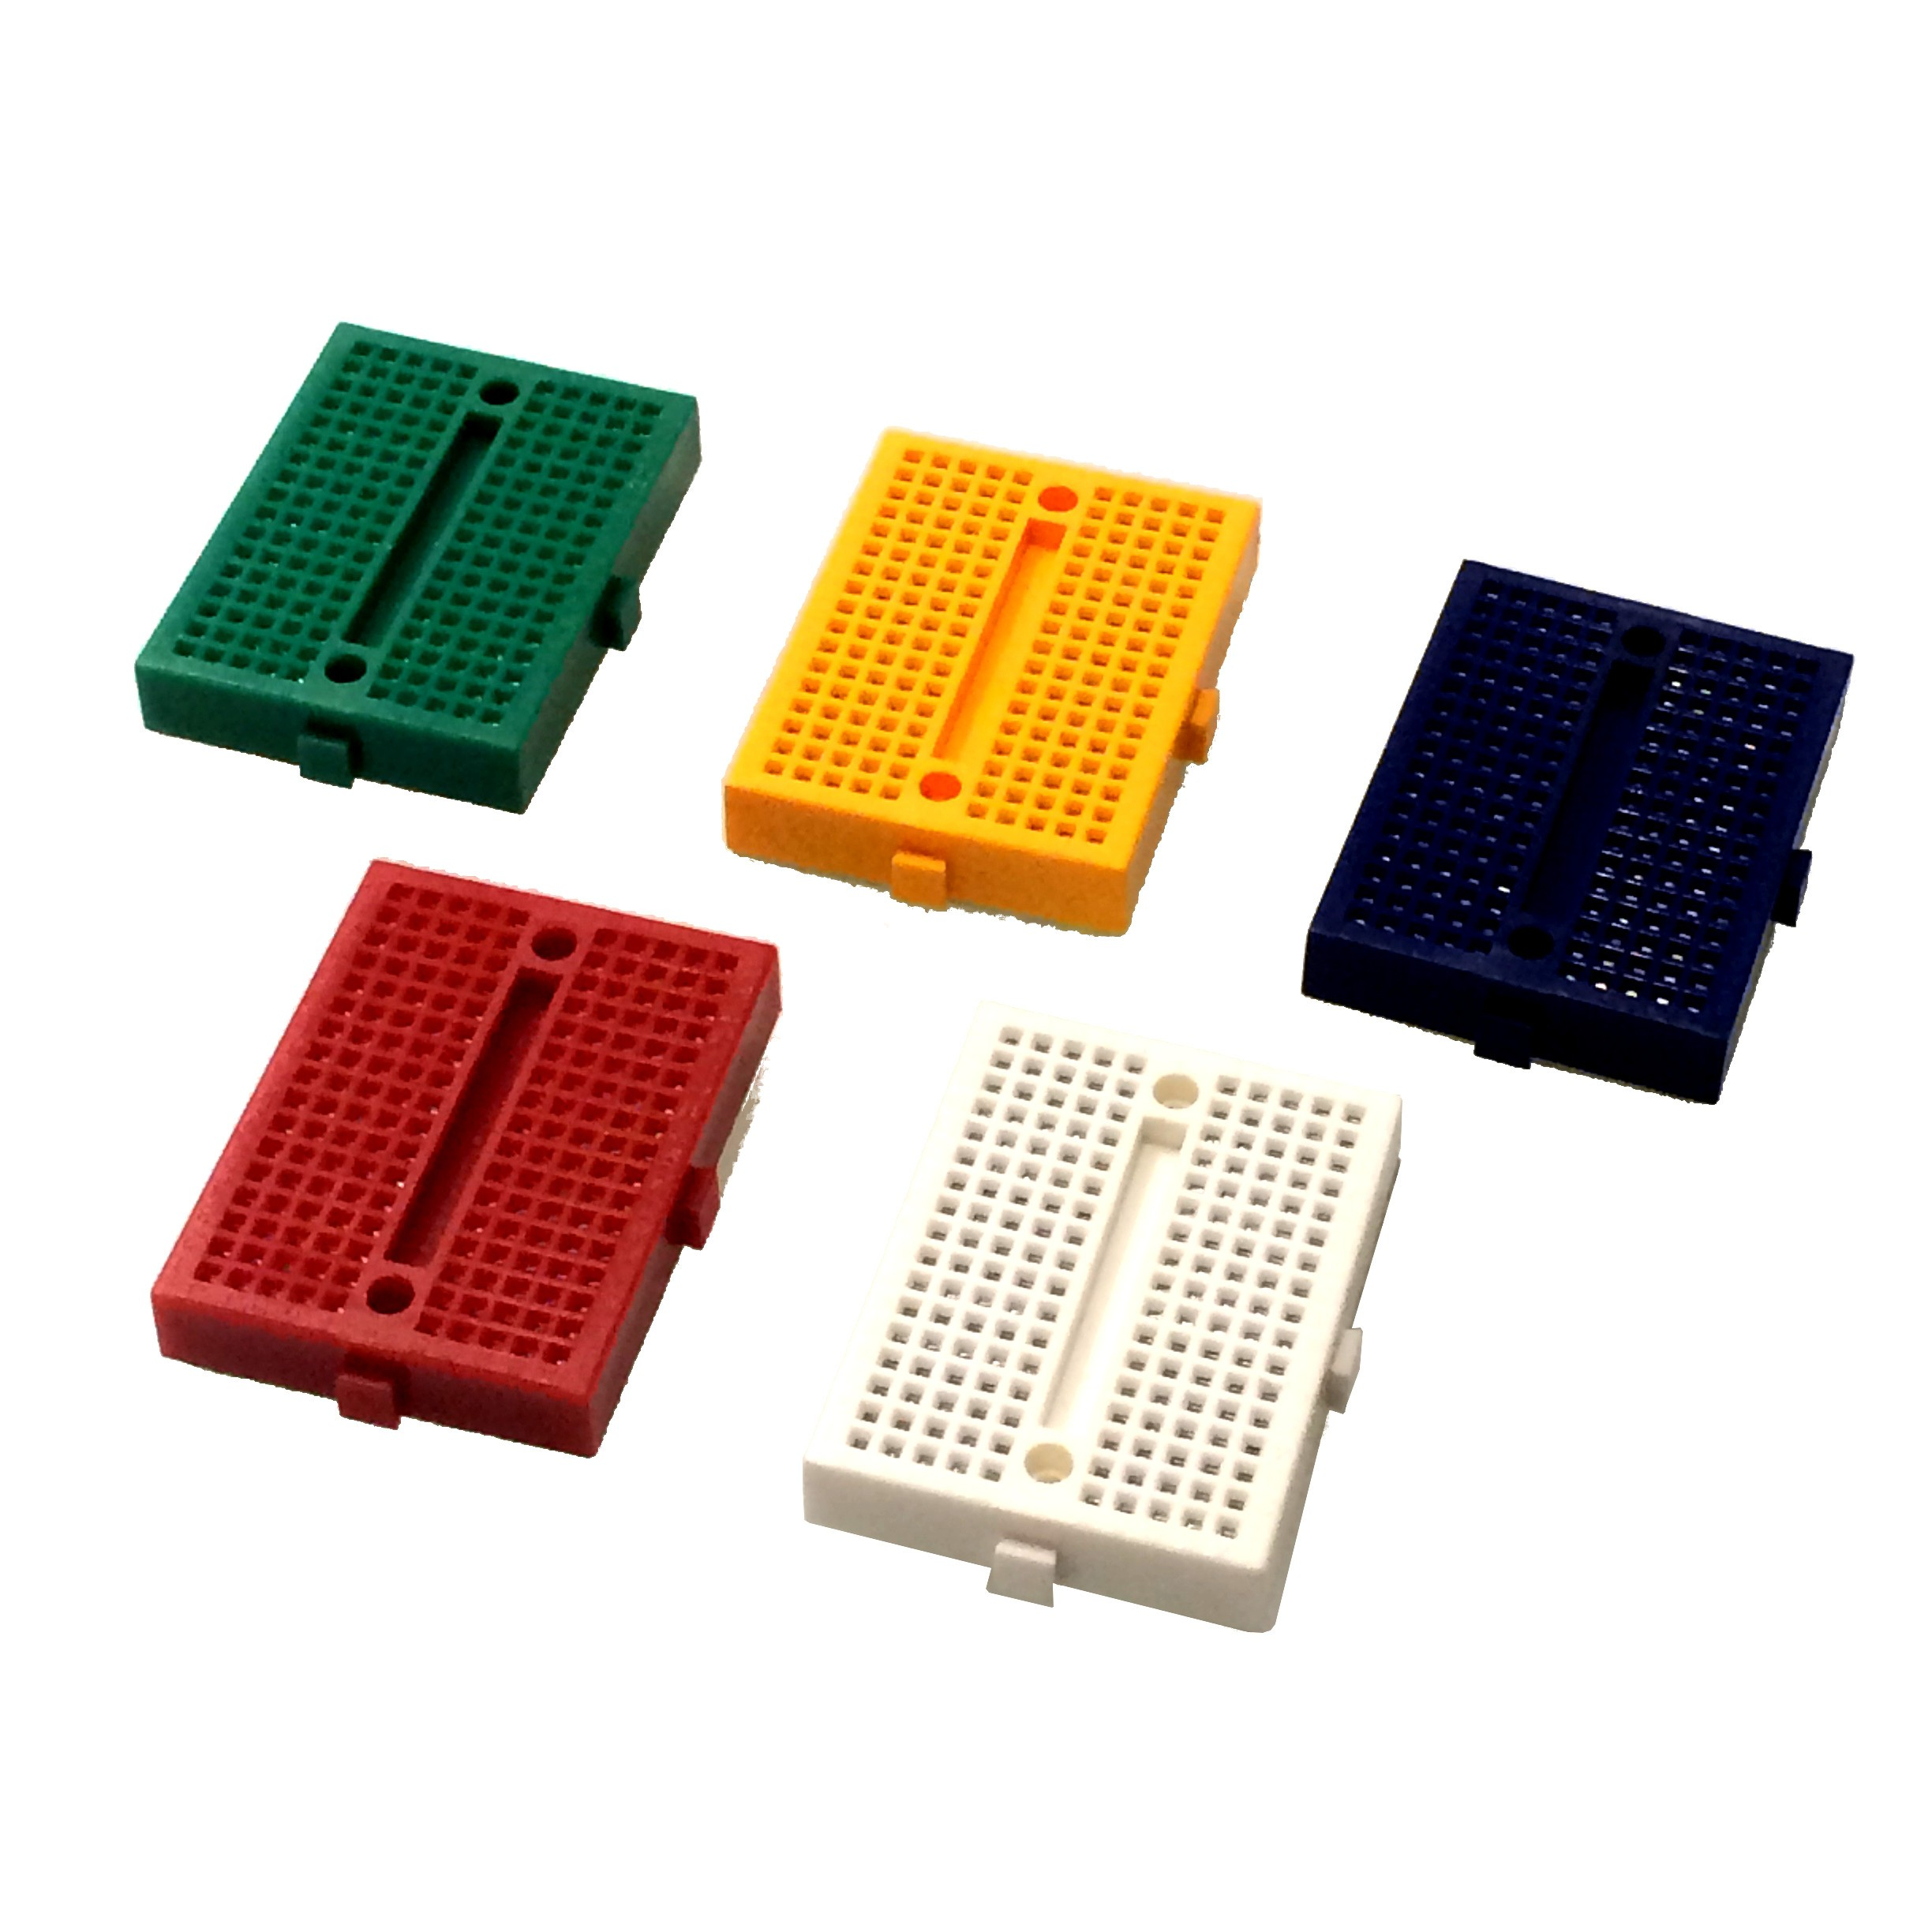 Http 10 Daily Contact Us 01 1440 Breadboard Solder Finished Prototype For Pcb Circuit Board Ebay Micro